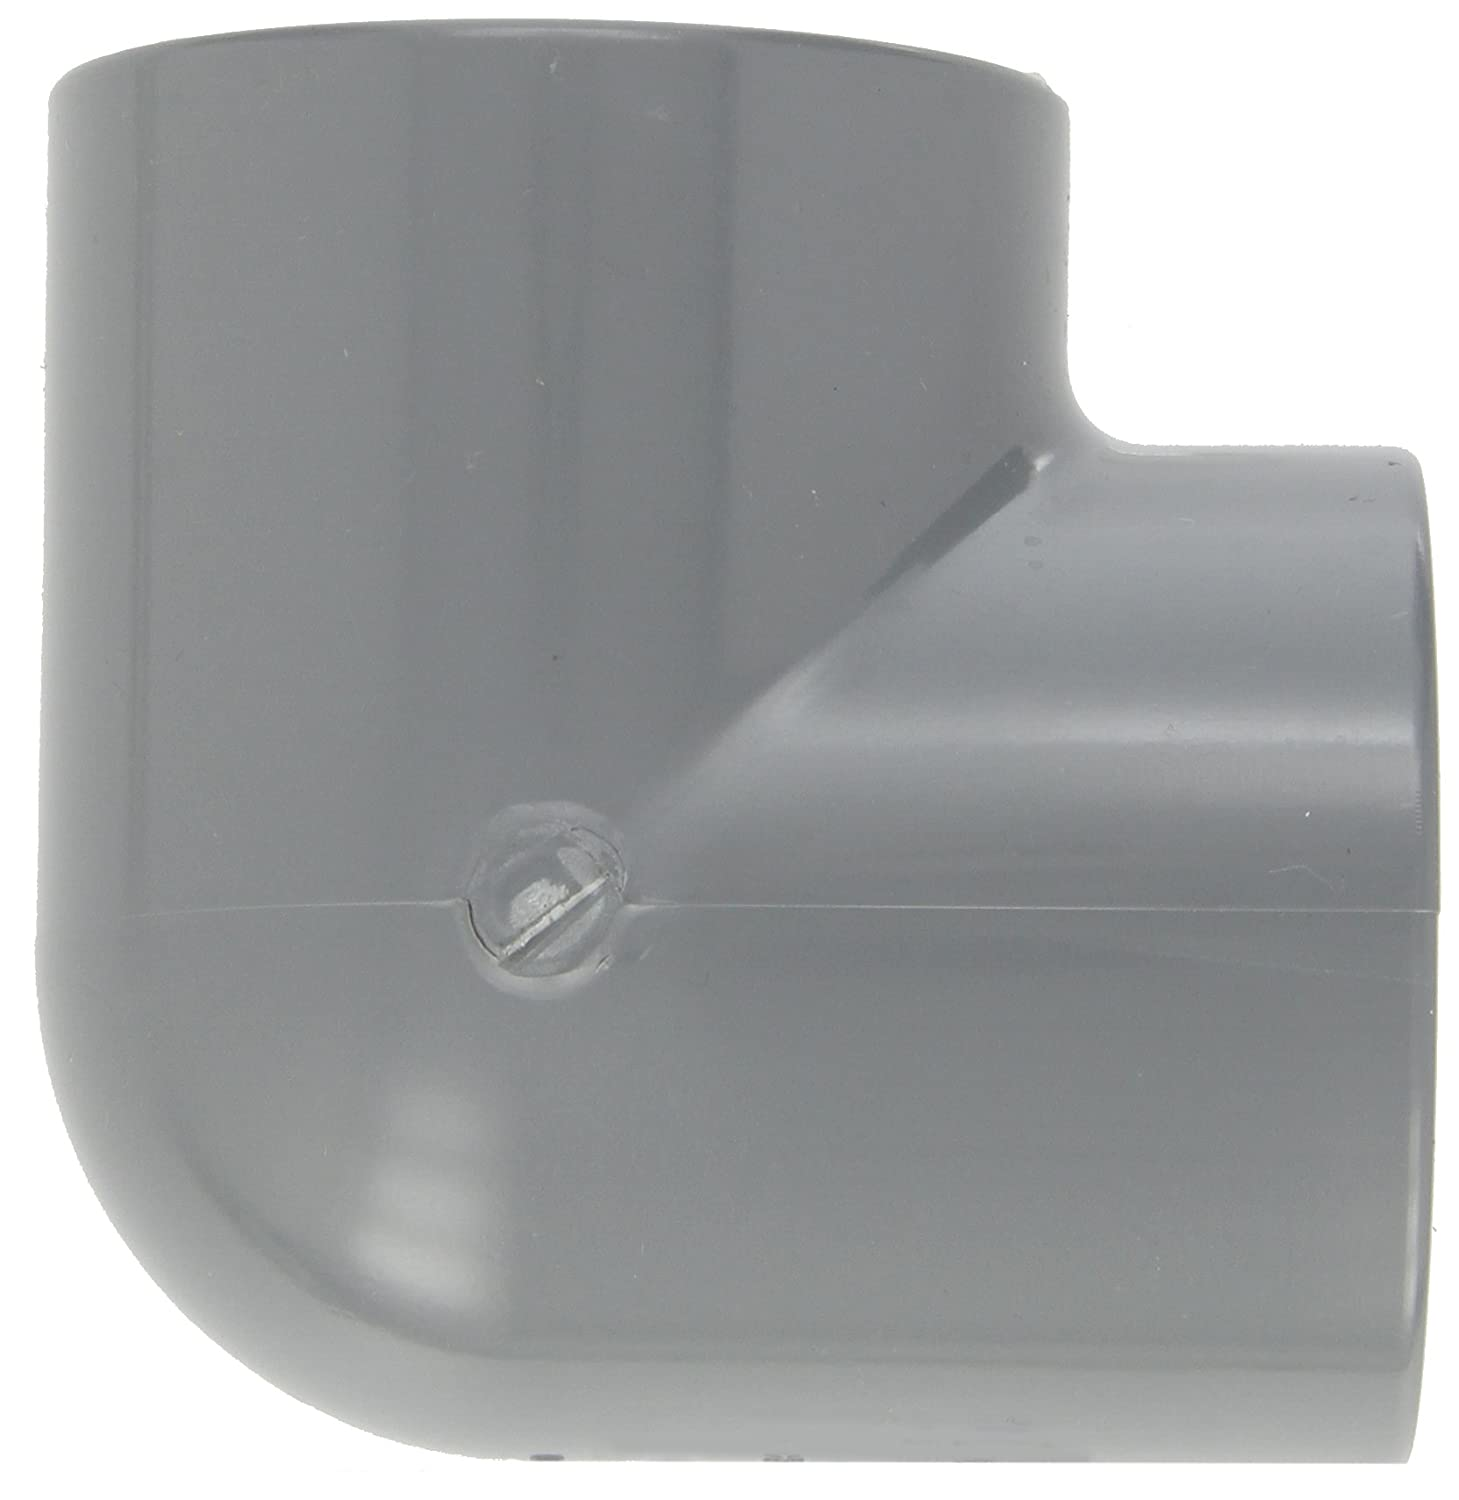 Nipple Spears 88-C Series CPVC Pipe Fitting 1-1//2 NPT Male Gray 4 Length Schedule 80